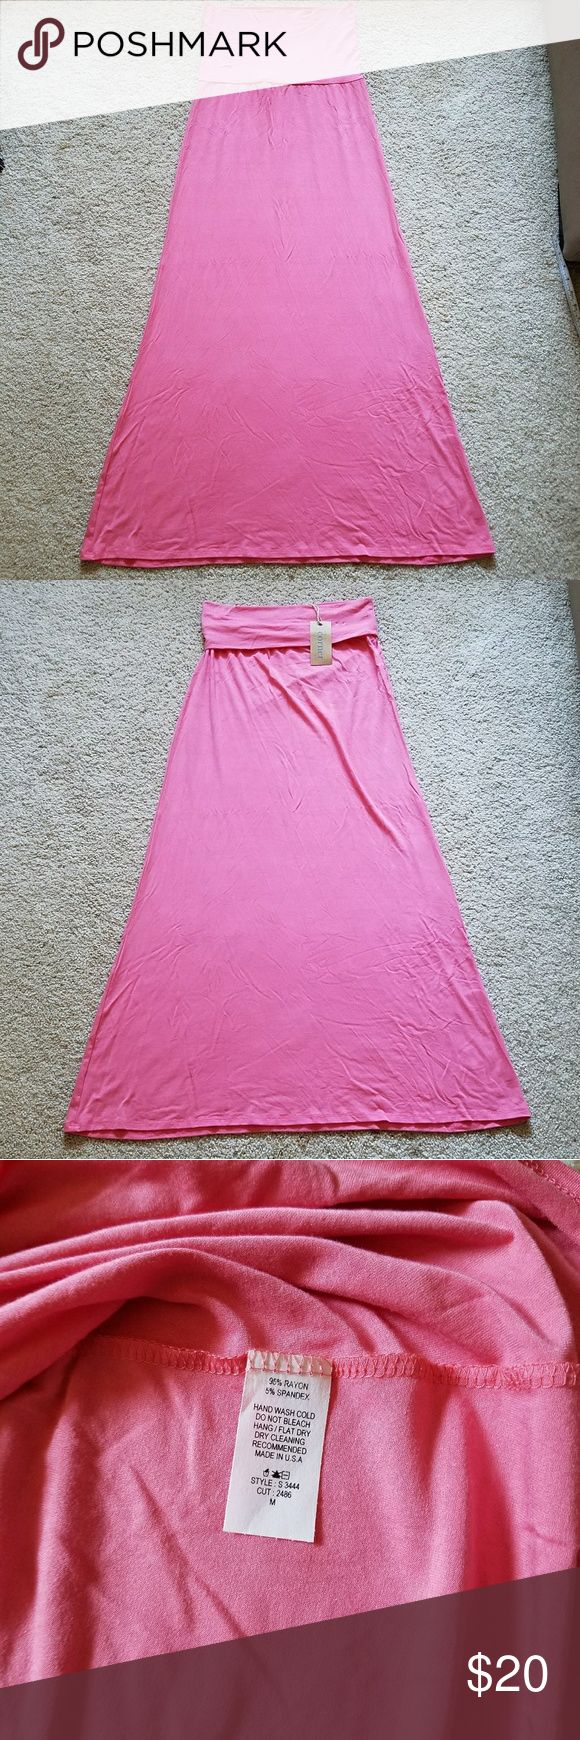 NWT Coral Maxi Skirt NWT Coral Maxi Skirt. Pictures are true color. The last two are stock photos.    I bought for myself, but it's too tight on me for my comfort. This will be perfect if you are a true size 8 or smaller.   Material is on the thinner side, I would personally wear a slip with it for modesty. Super soft & stretchy. Only tried on & then stored.   Cross Posted.   PRICE FIRM unless bundled.   ✔Questions, 🚫Trades,🚫smoking 🐶 Friendly home. Corner Clothing Skirts Maxi